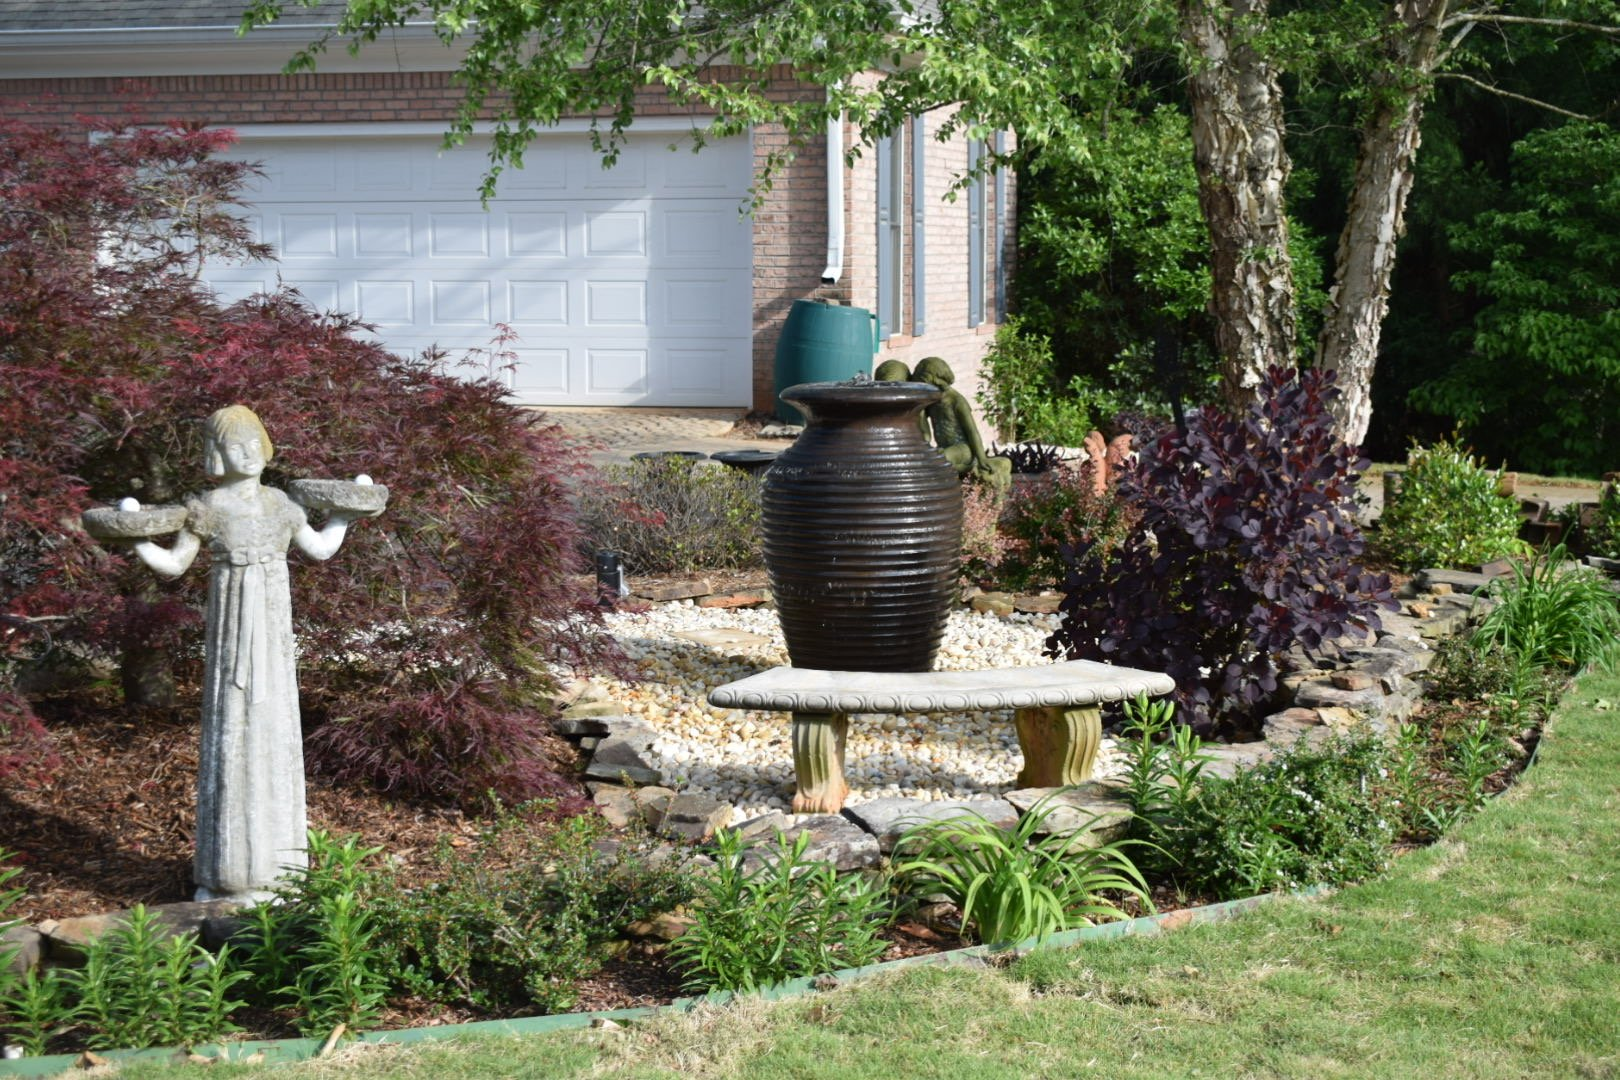 Custom Designed Landscaping With Garen Beds, Shrubs, And Statues